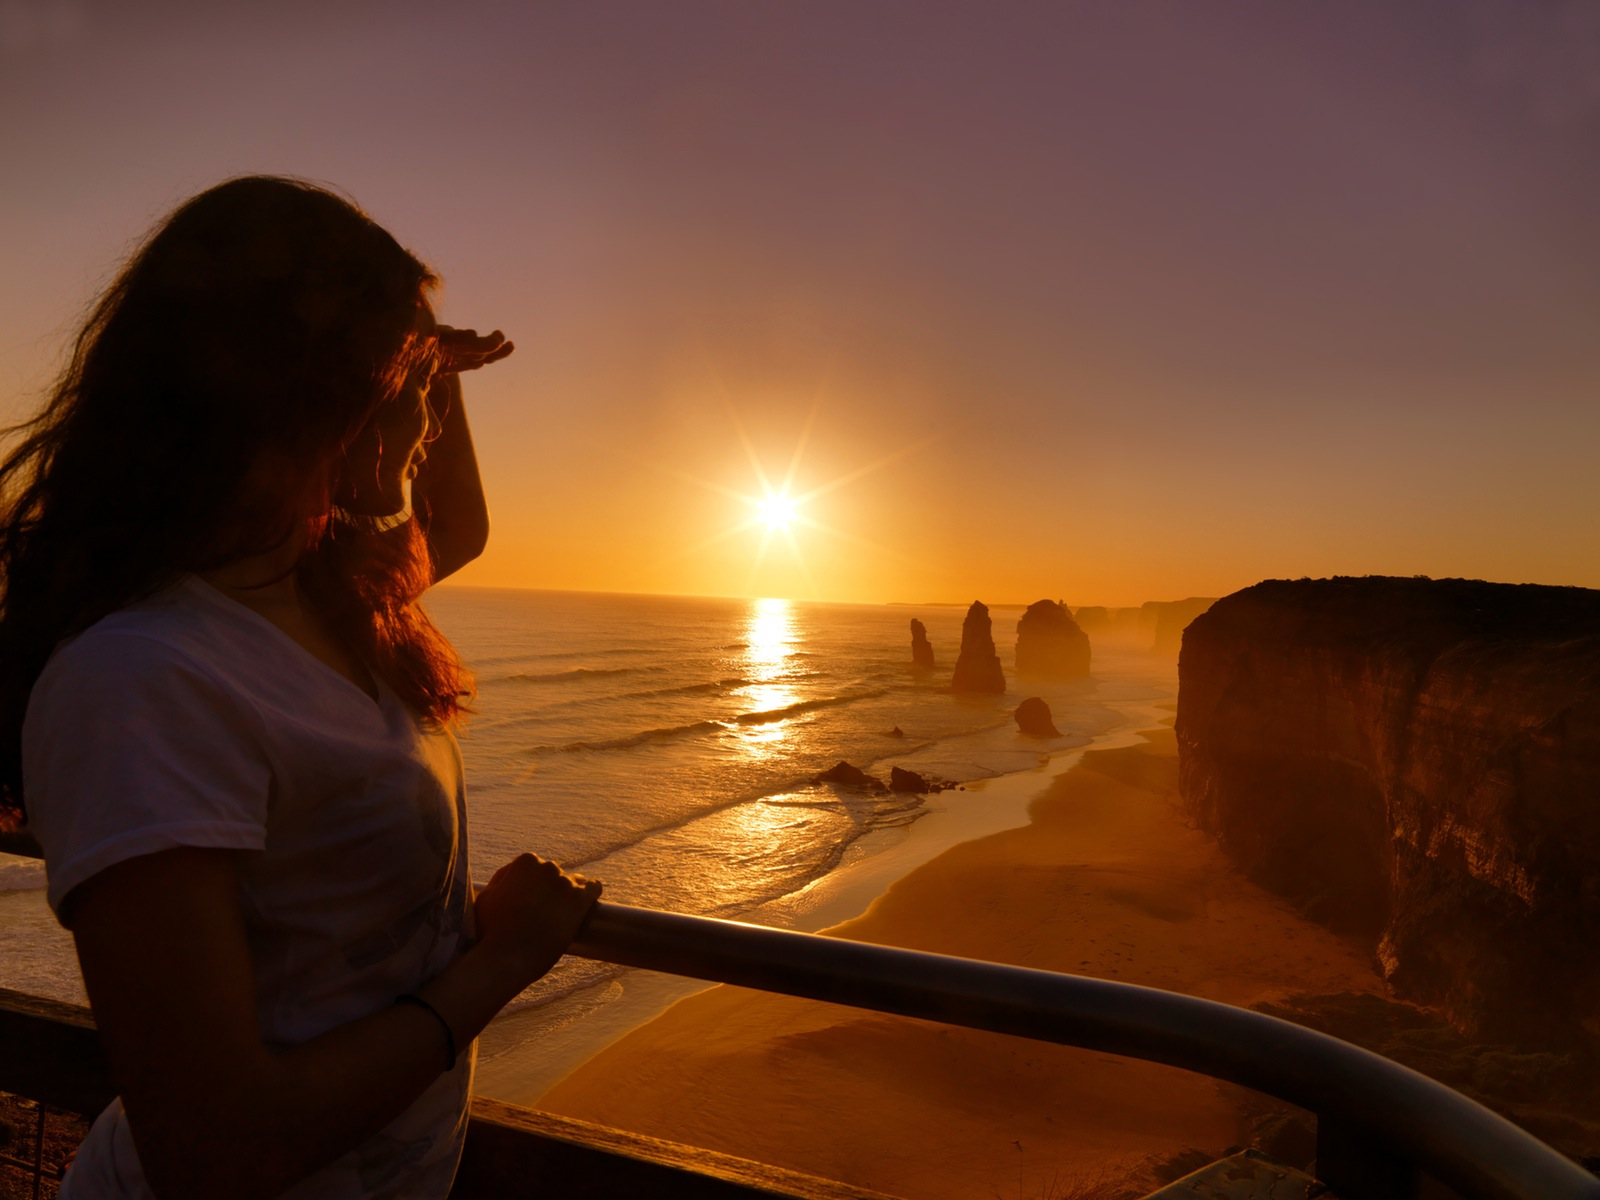 Sunset at the iconic Twelve Apostles